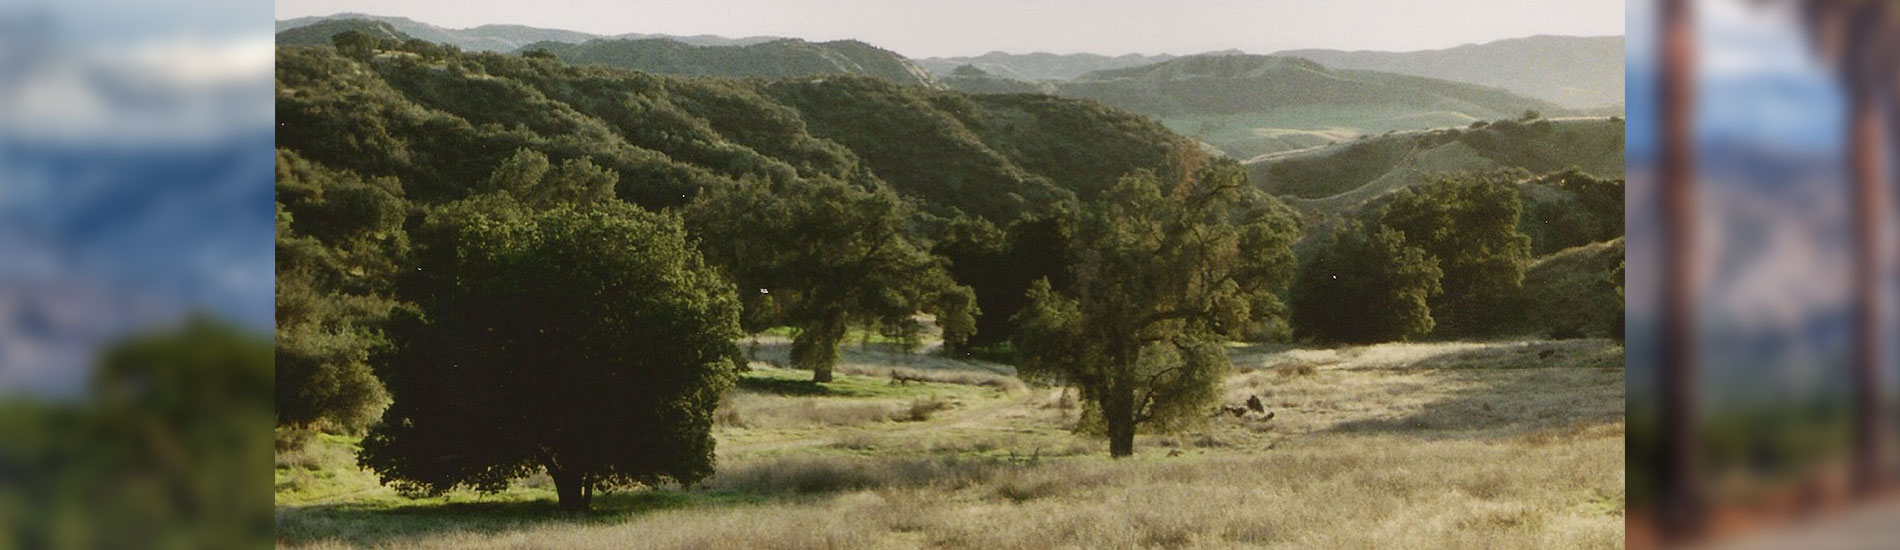 Plain of Oaks at Live Oak Canyon Open Space